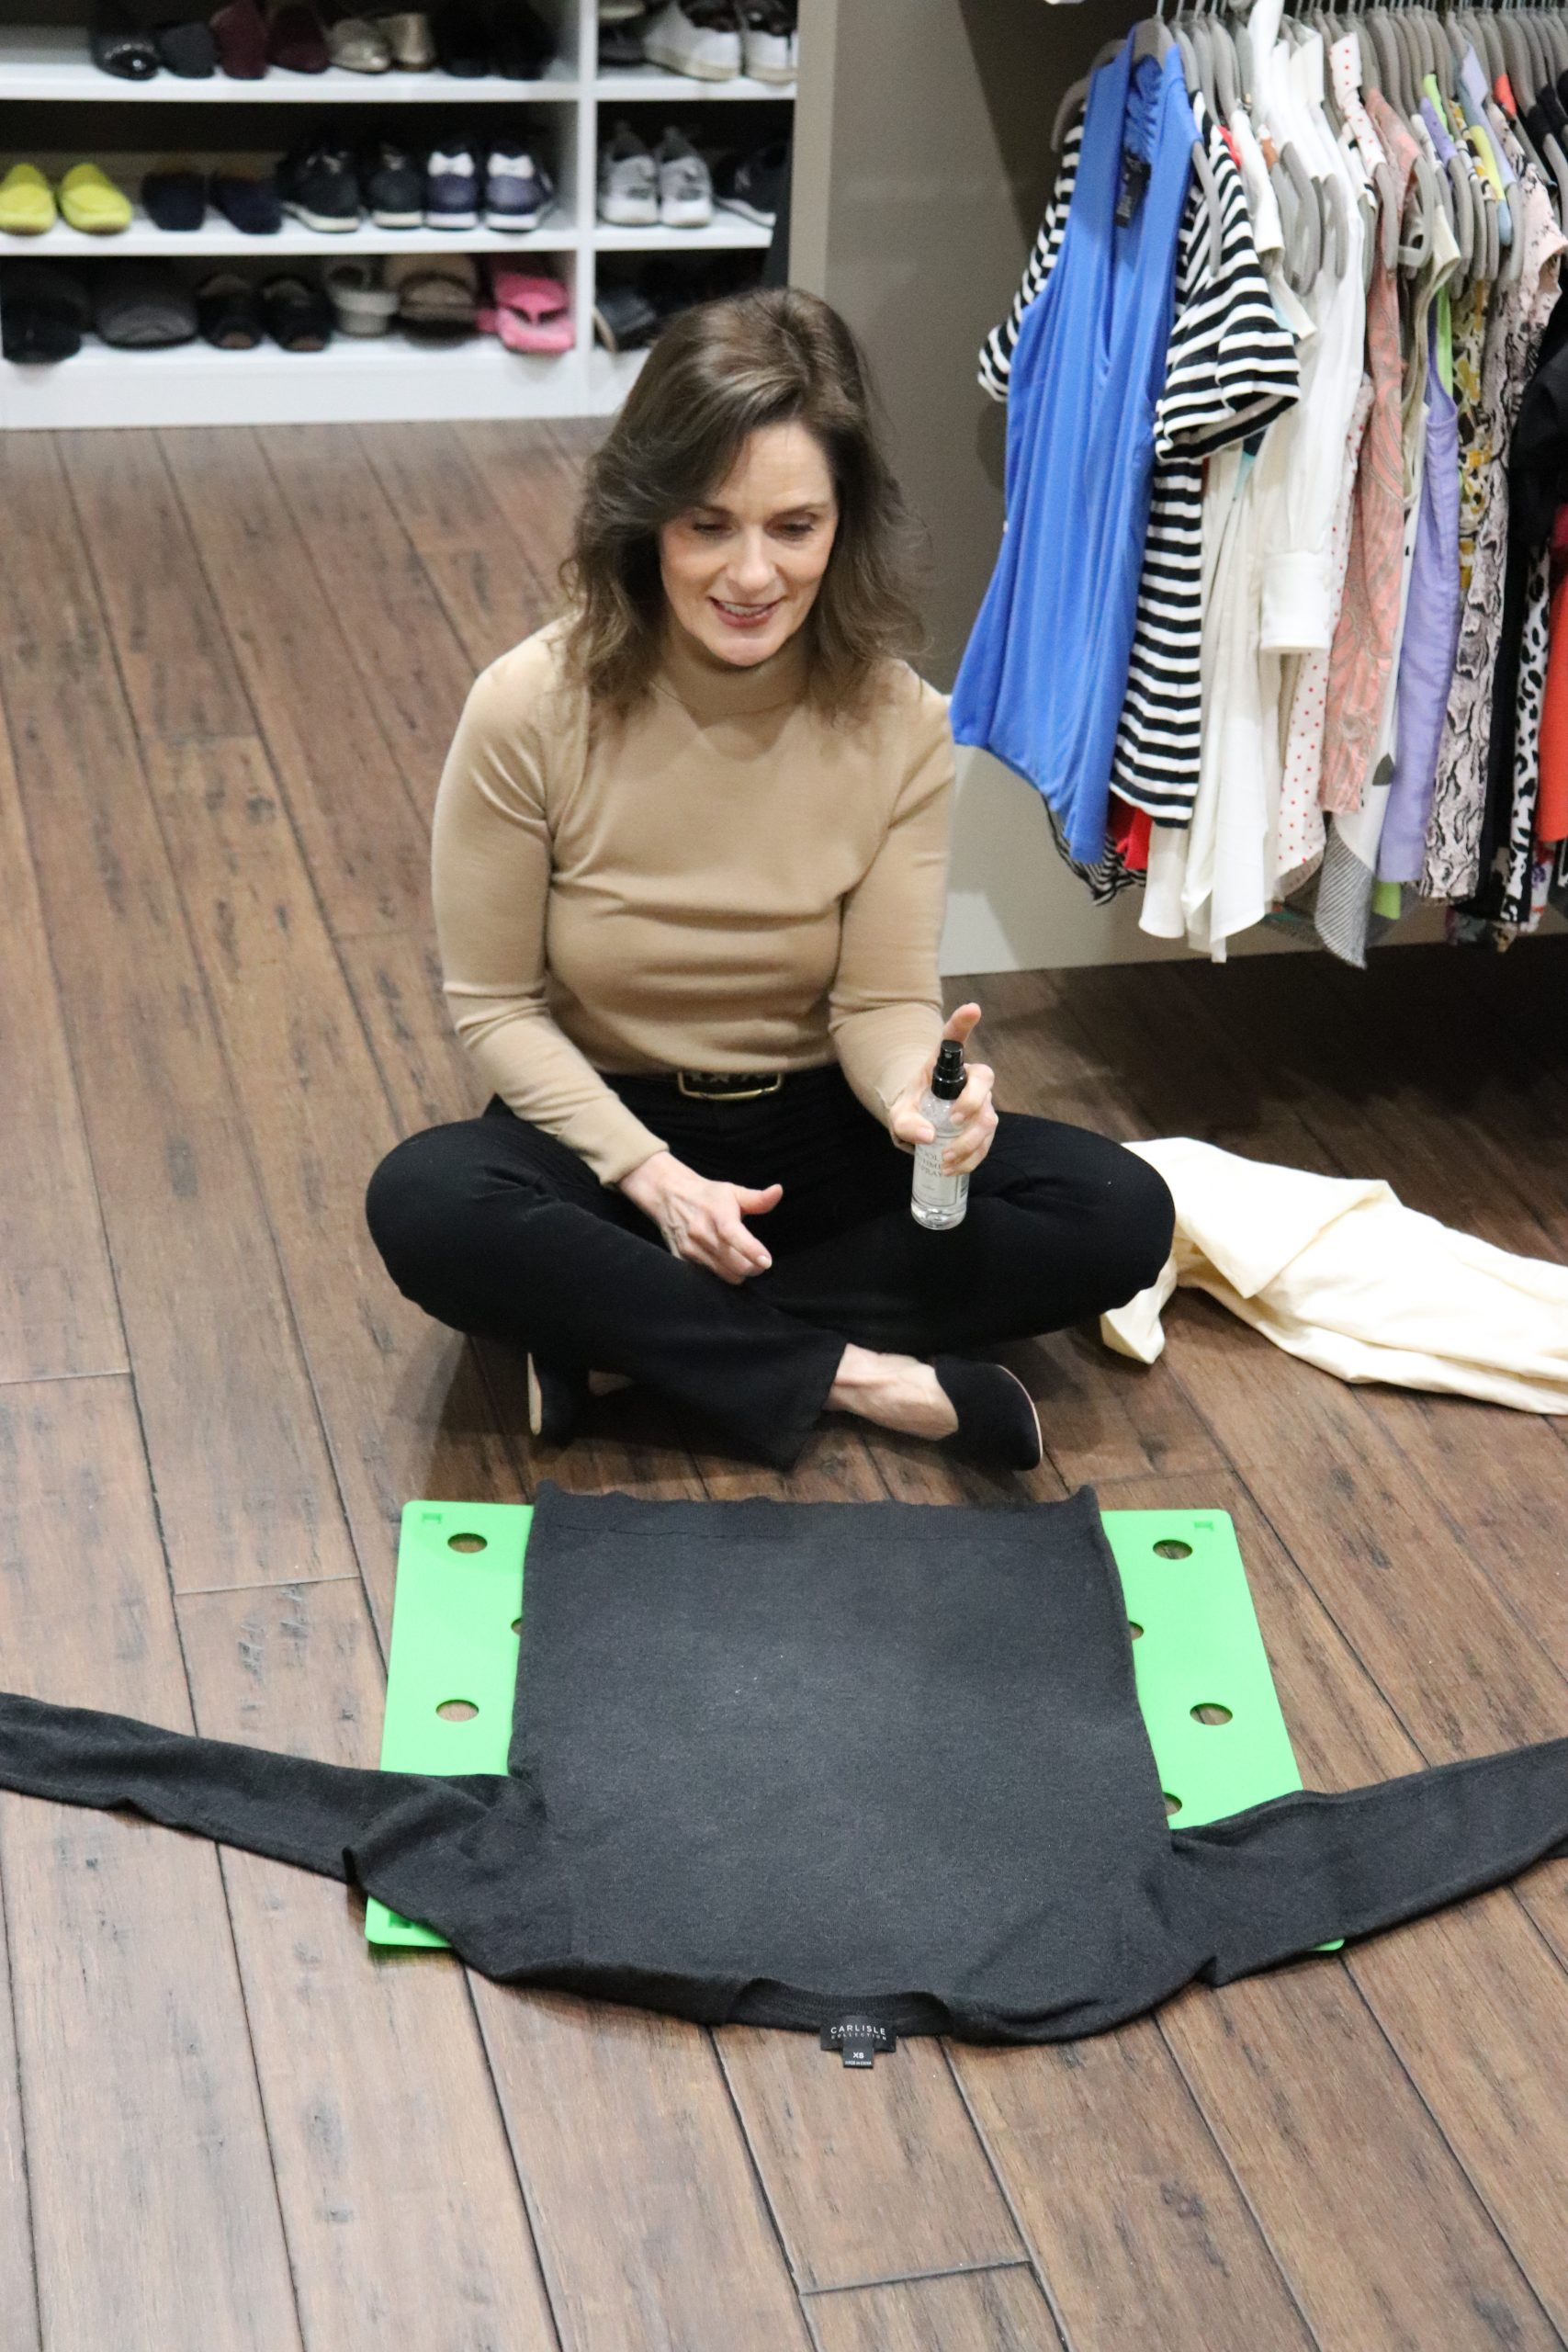 woman over 50 wearing a camel cashmere turtleneck sweater and black jeans sitting on the floor of a closet spraying a sweater to explain how to show cashmere cleaning and storage love tips